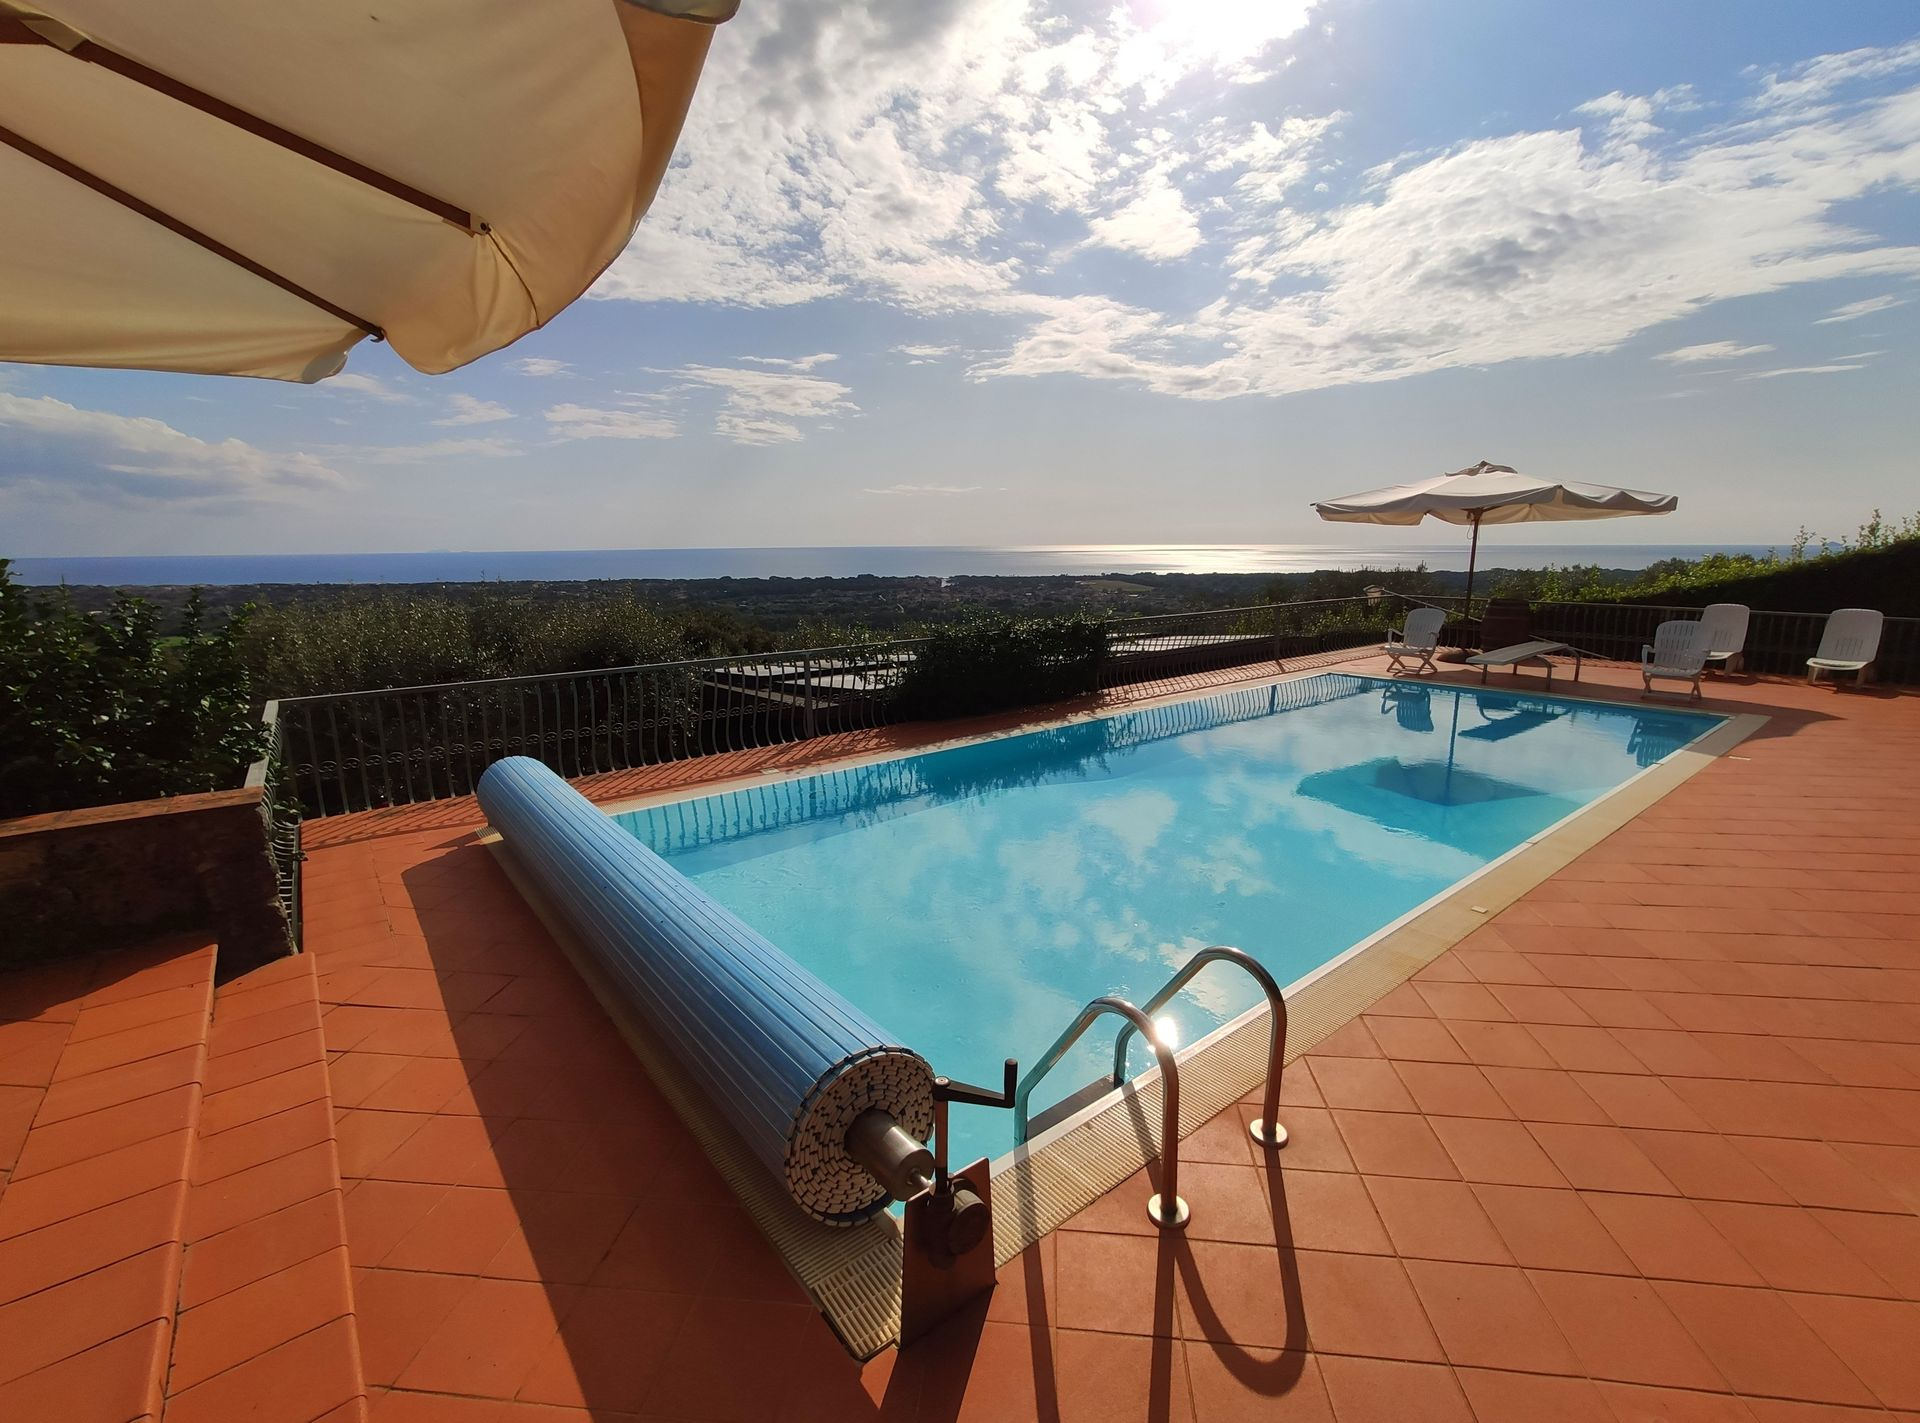 Italian Case Forte Dei Marmi terrazza sul mare: villa that sleeps 8 people in 4 bedrooms